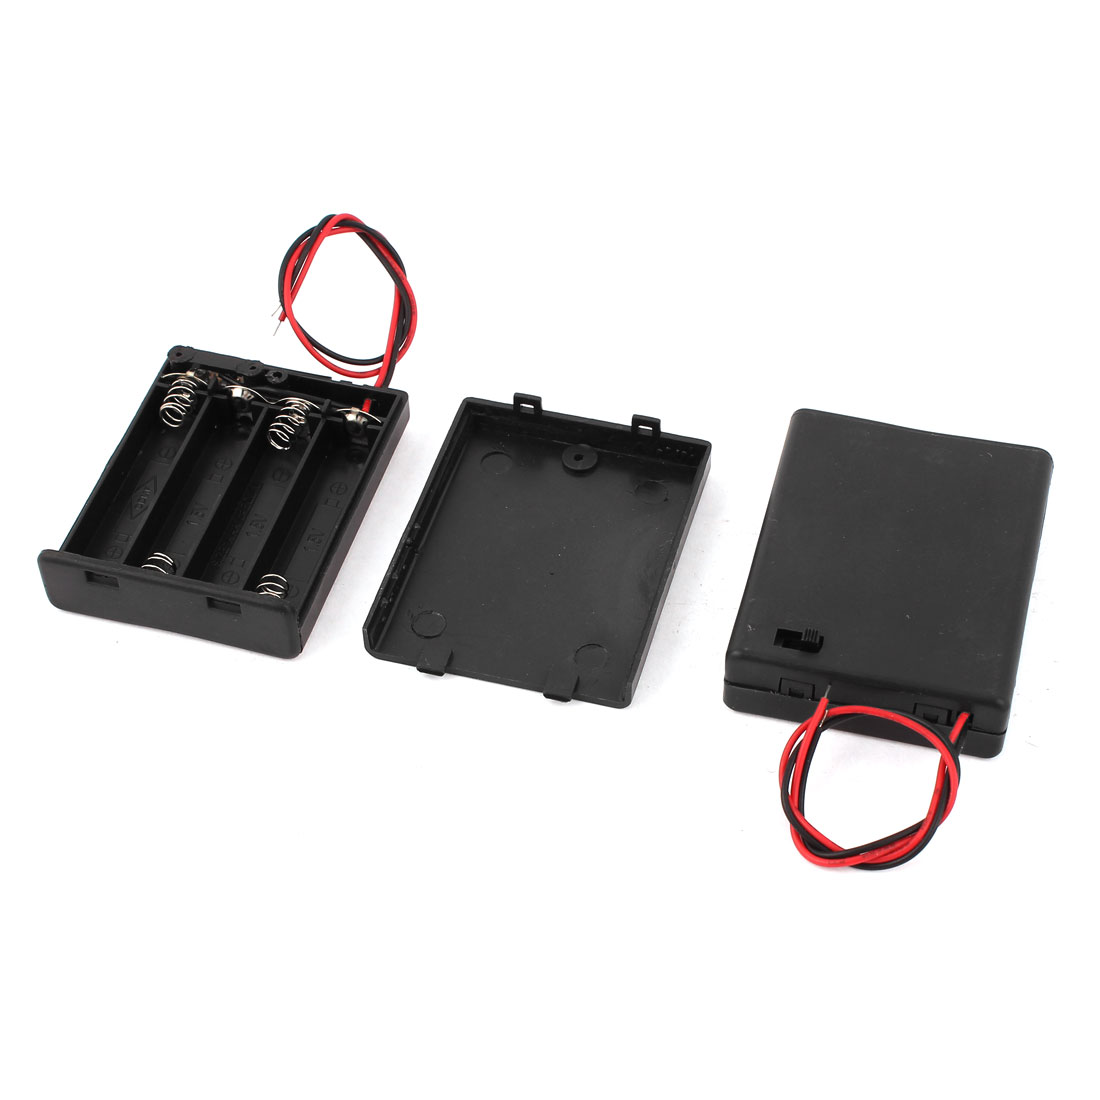 2 Pcs 2 Wire Black Plastic 4 Slot Container Holder Box Case for 4x1.5V AAA Battery